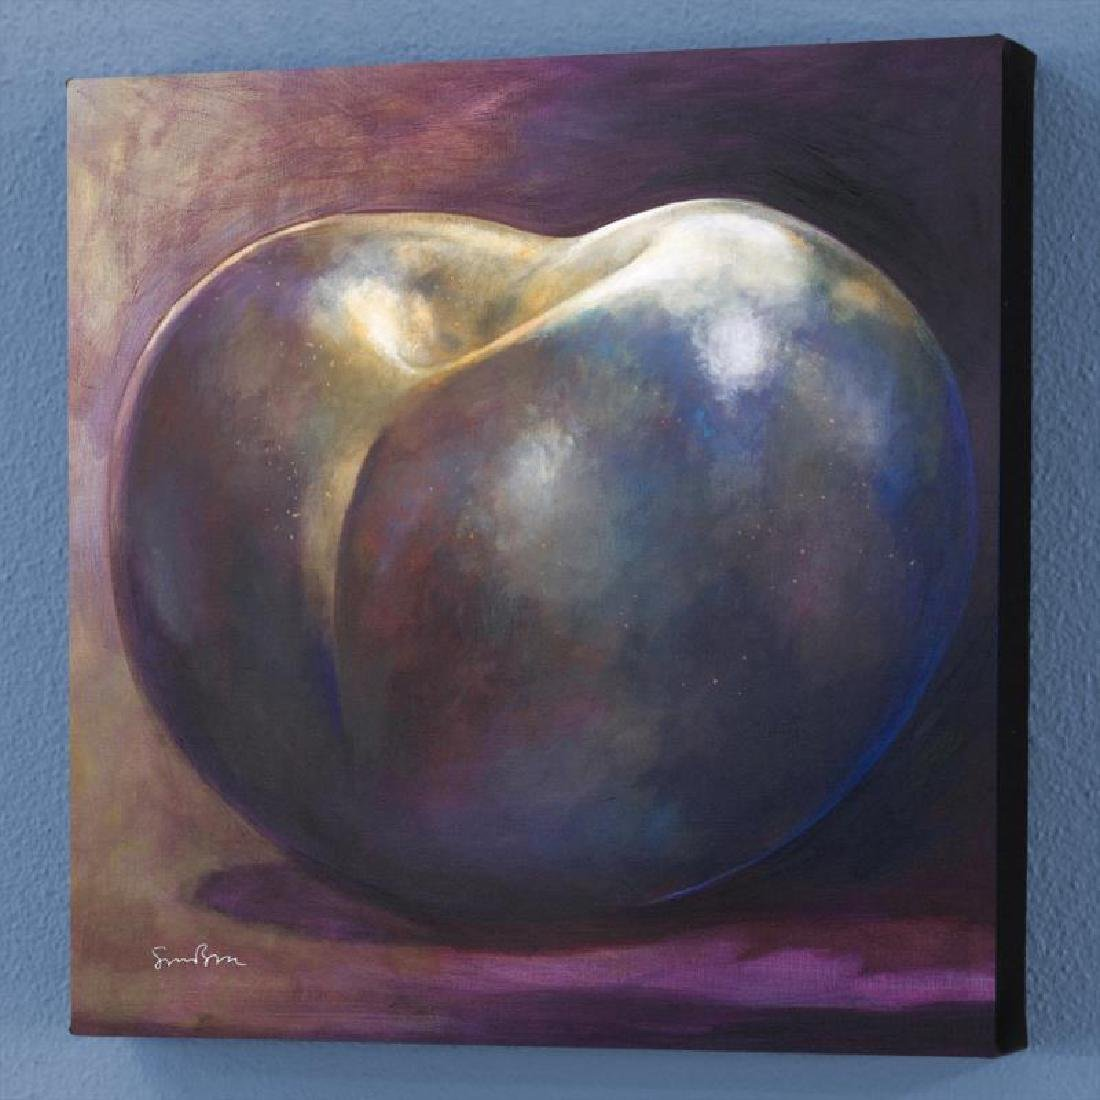 Bronze Limited Edition Giclee on Canvas by Simon Bull